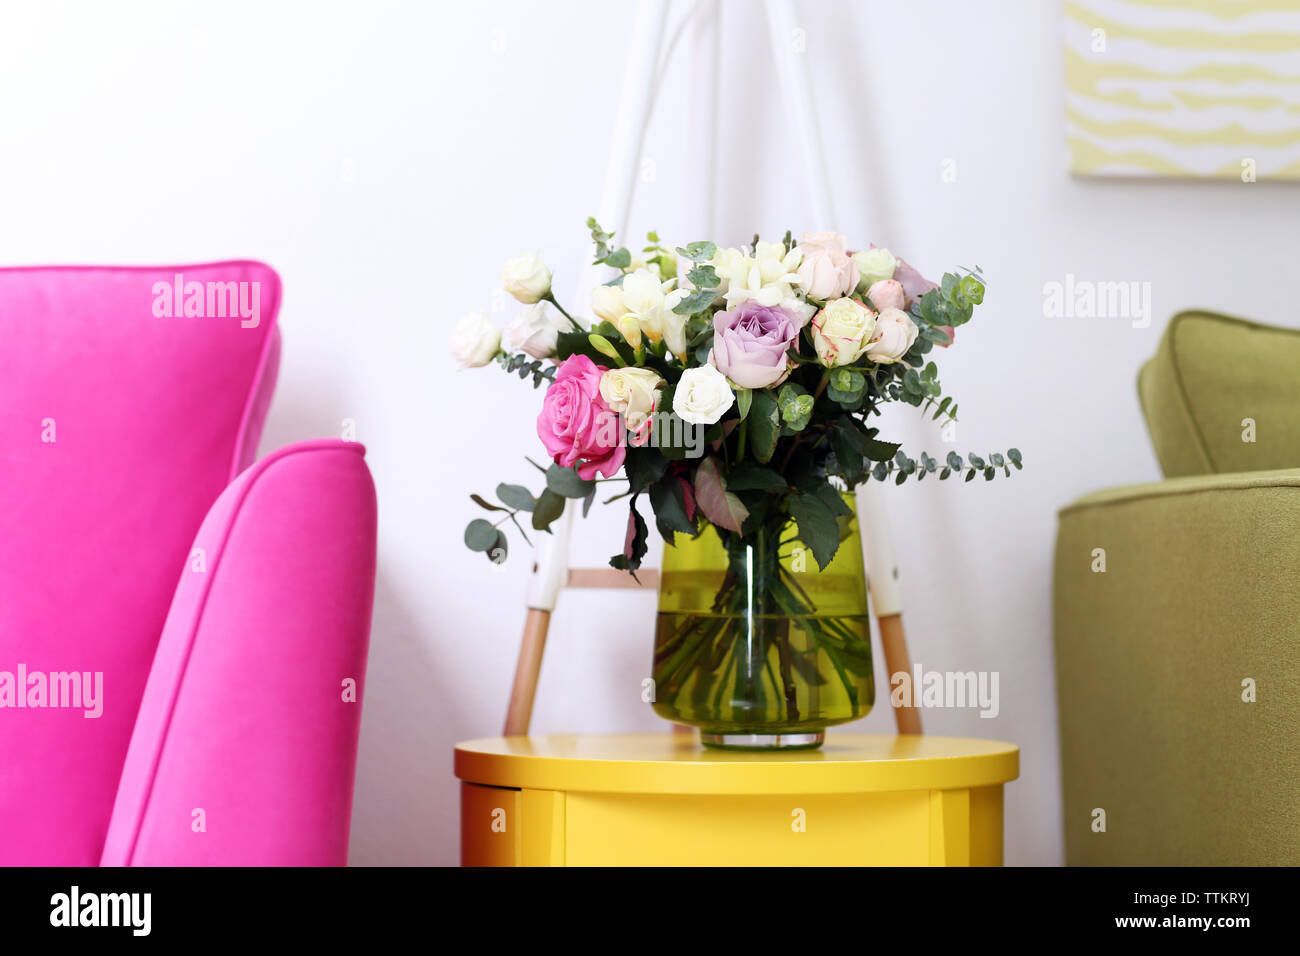 beautiful bouquet of colourful roses in glass vase TTKRYJ